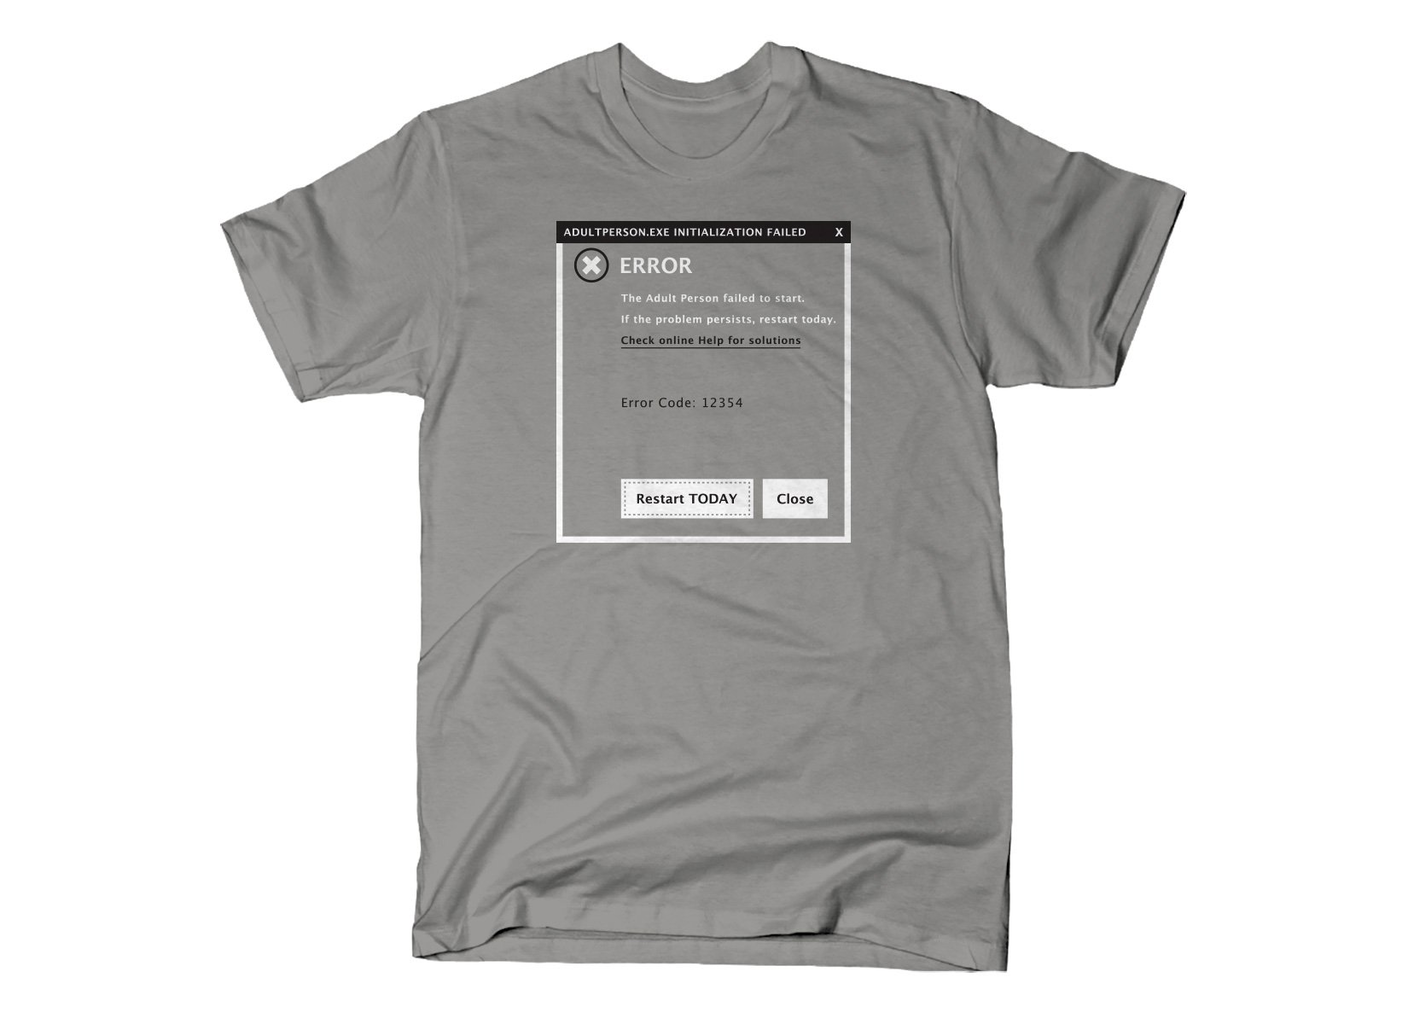 SnorgTees: Error, Adult Person Failed To Start